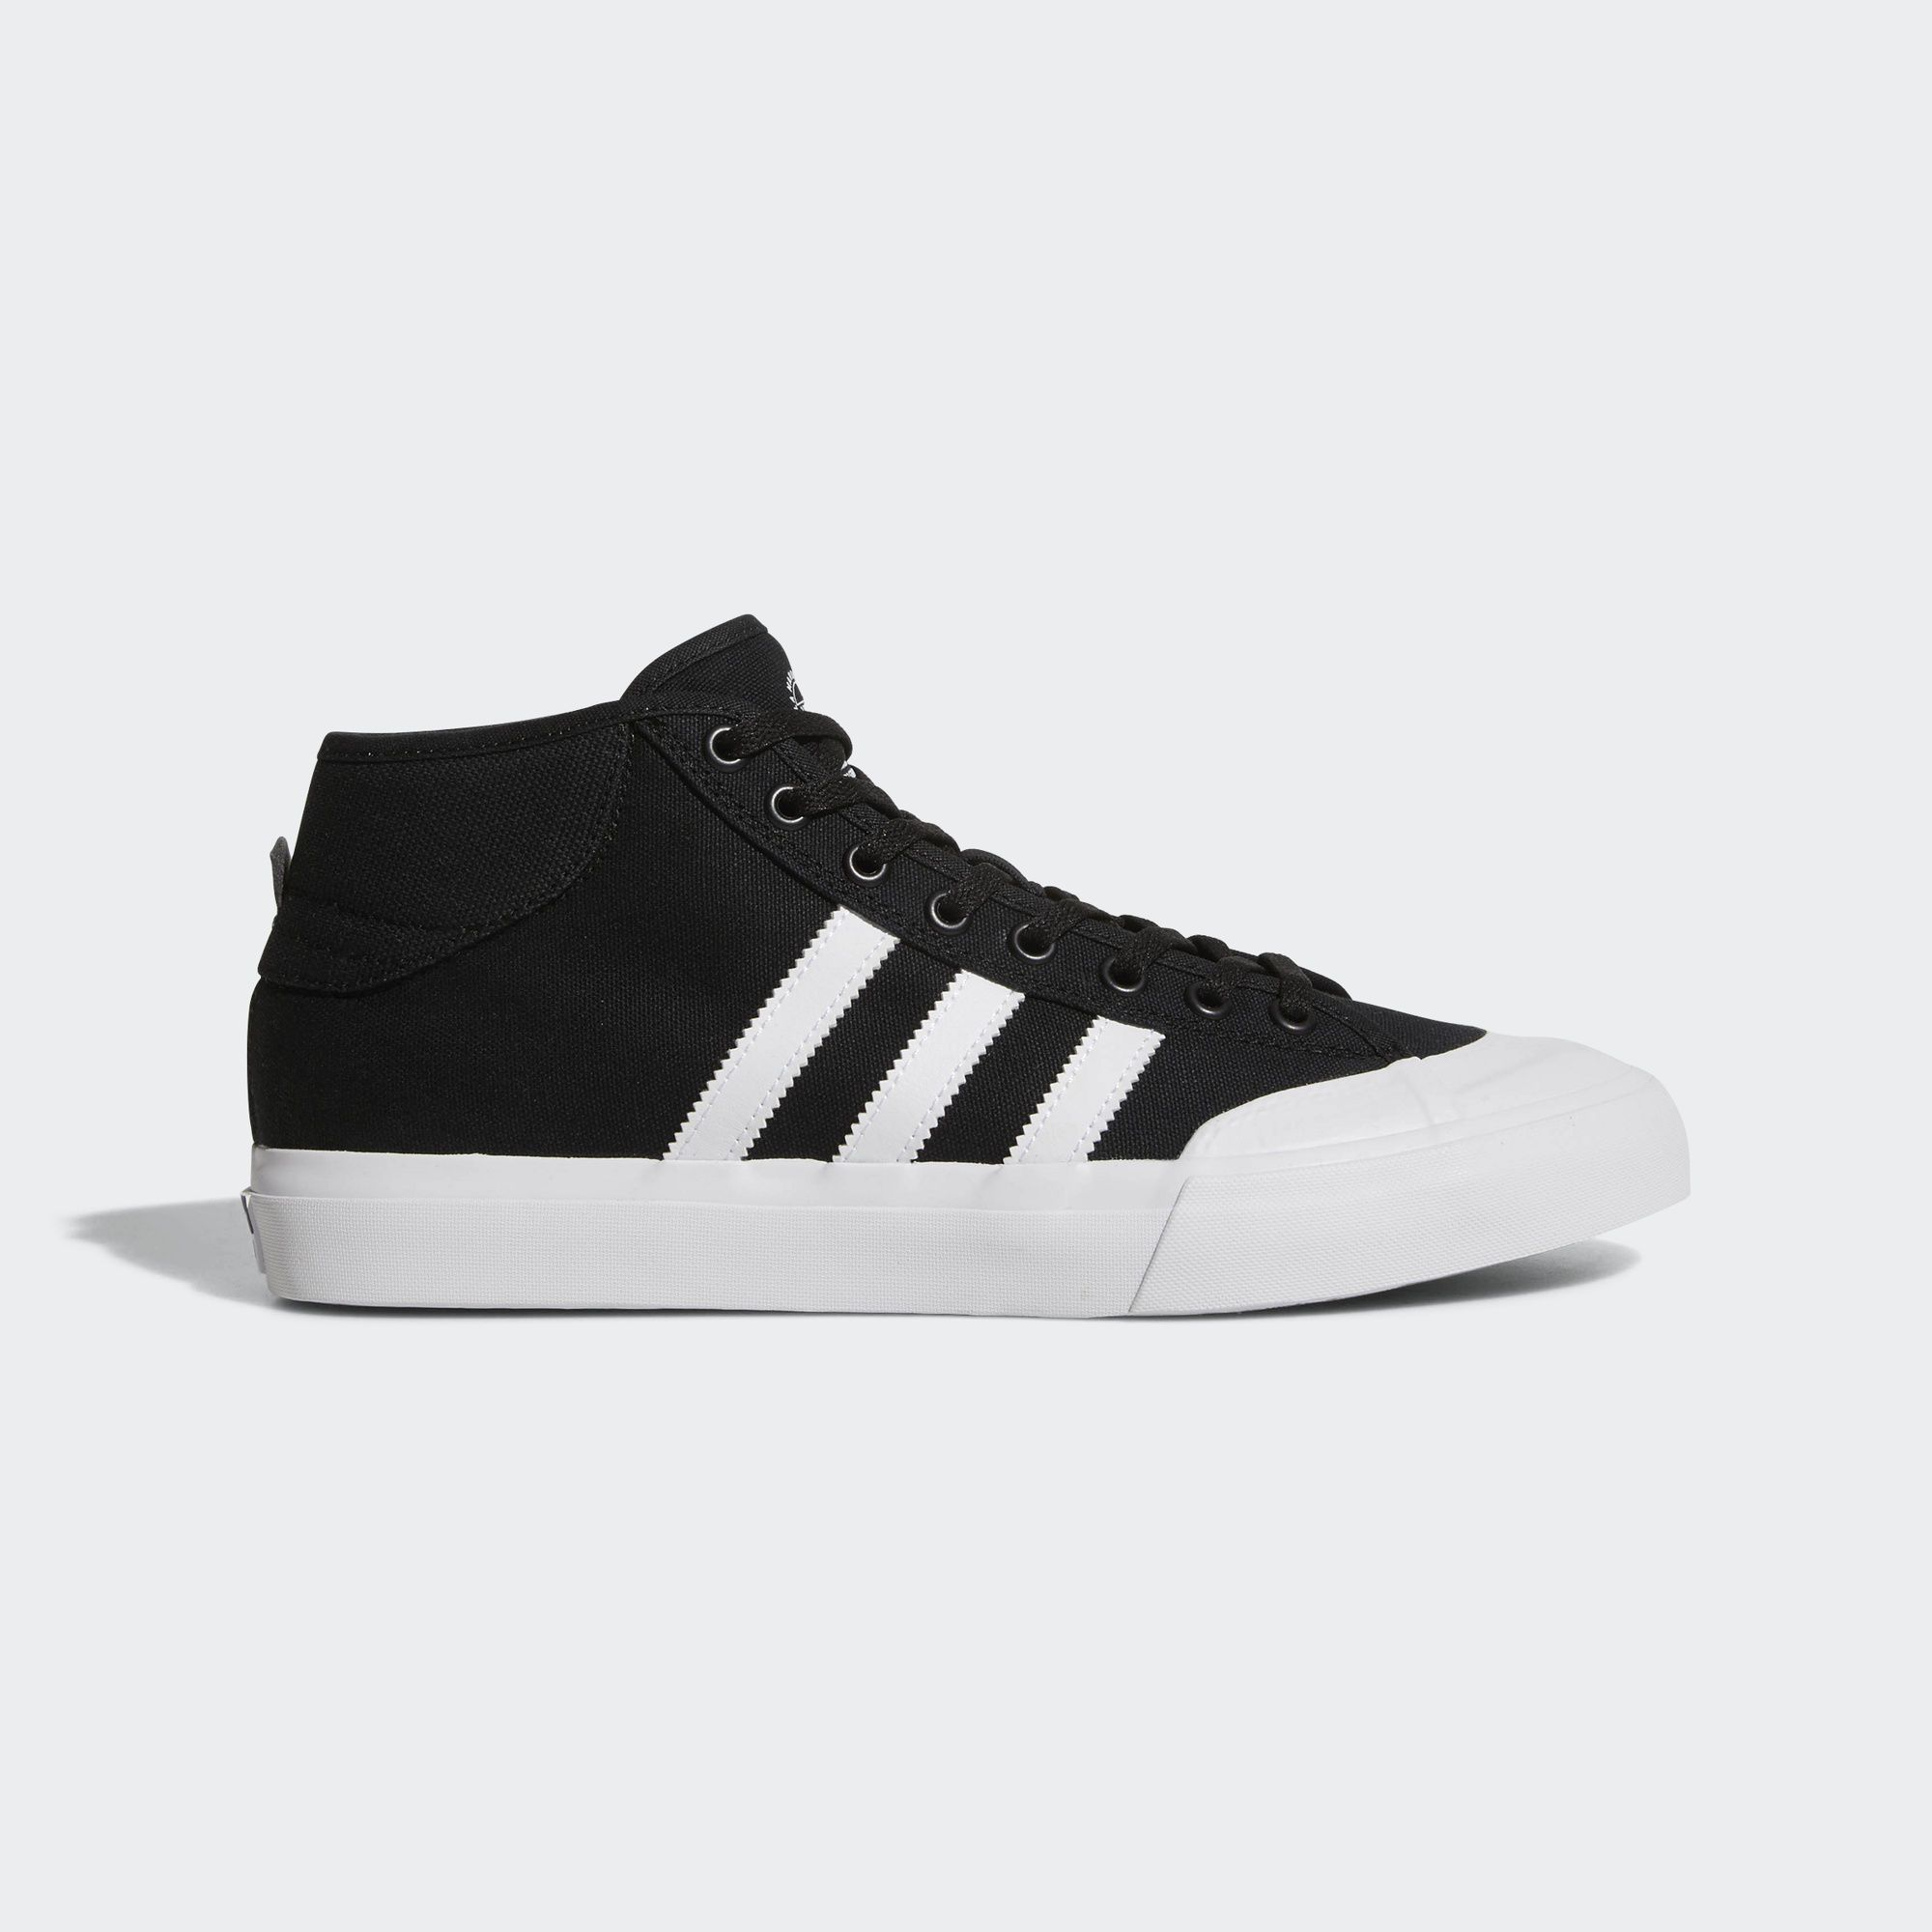 Adidas Matchcourt Mid Shoes | Adidas online, Adidas, Sneakers